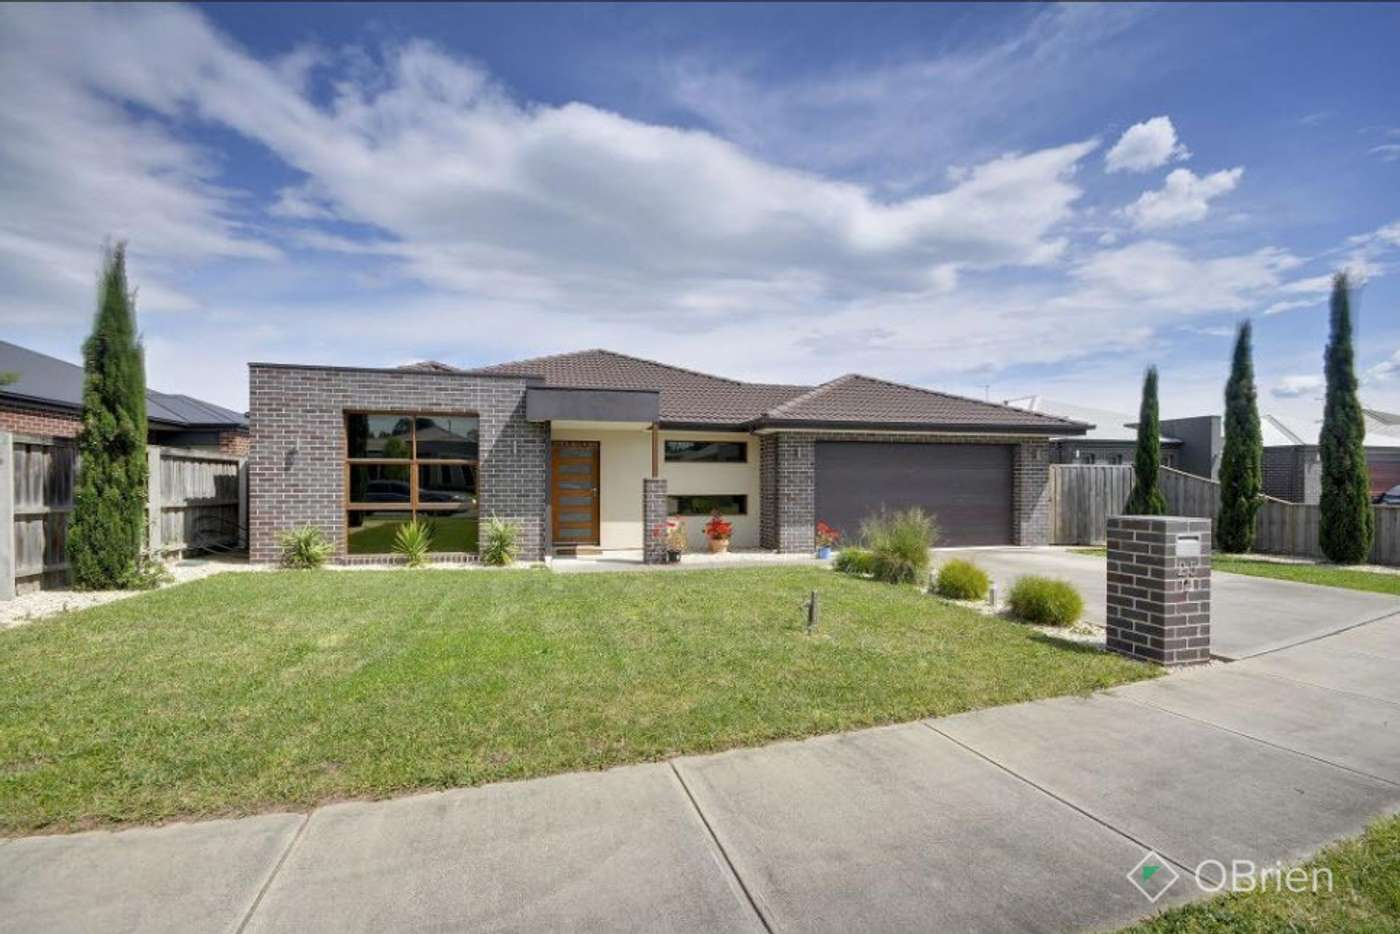 Main view of Homely house listing, 25 Greythorn Road, Traralgon VIC 3844